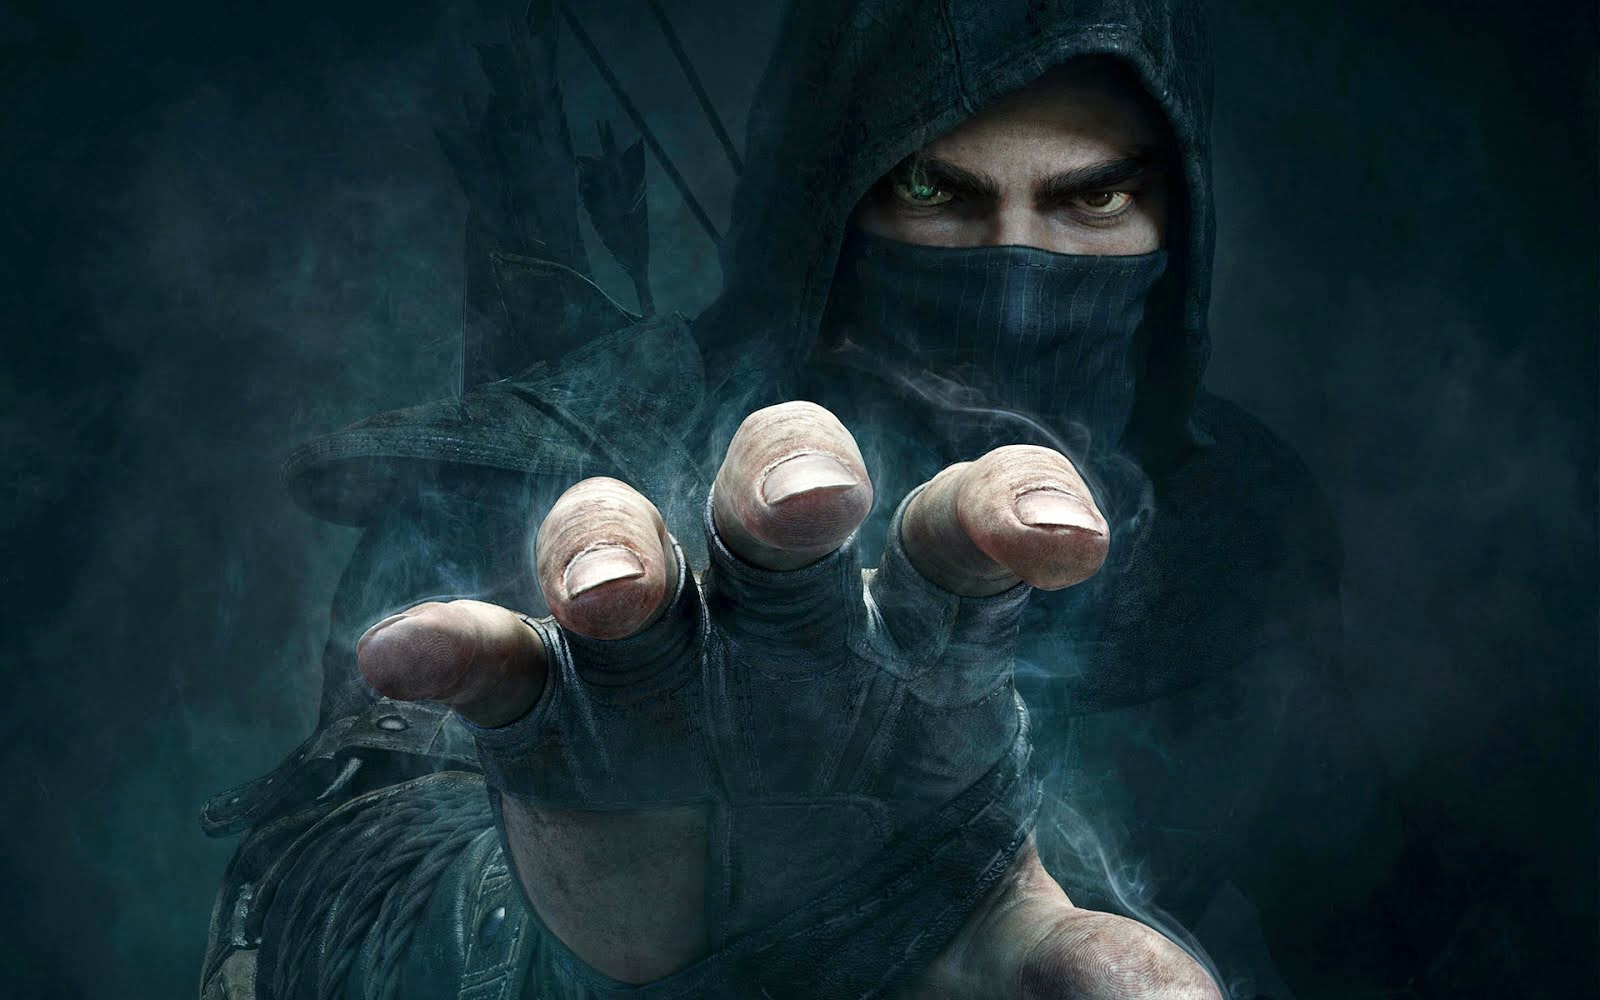 La demo de Thief ja està disponible a PS Store